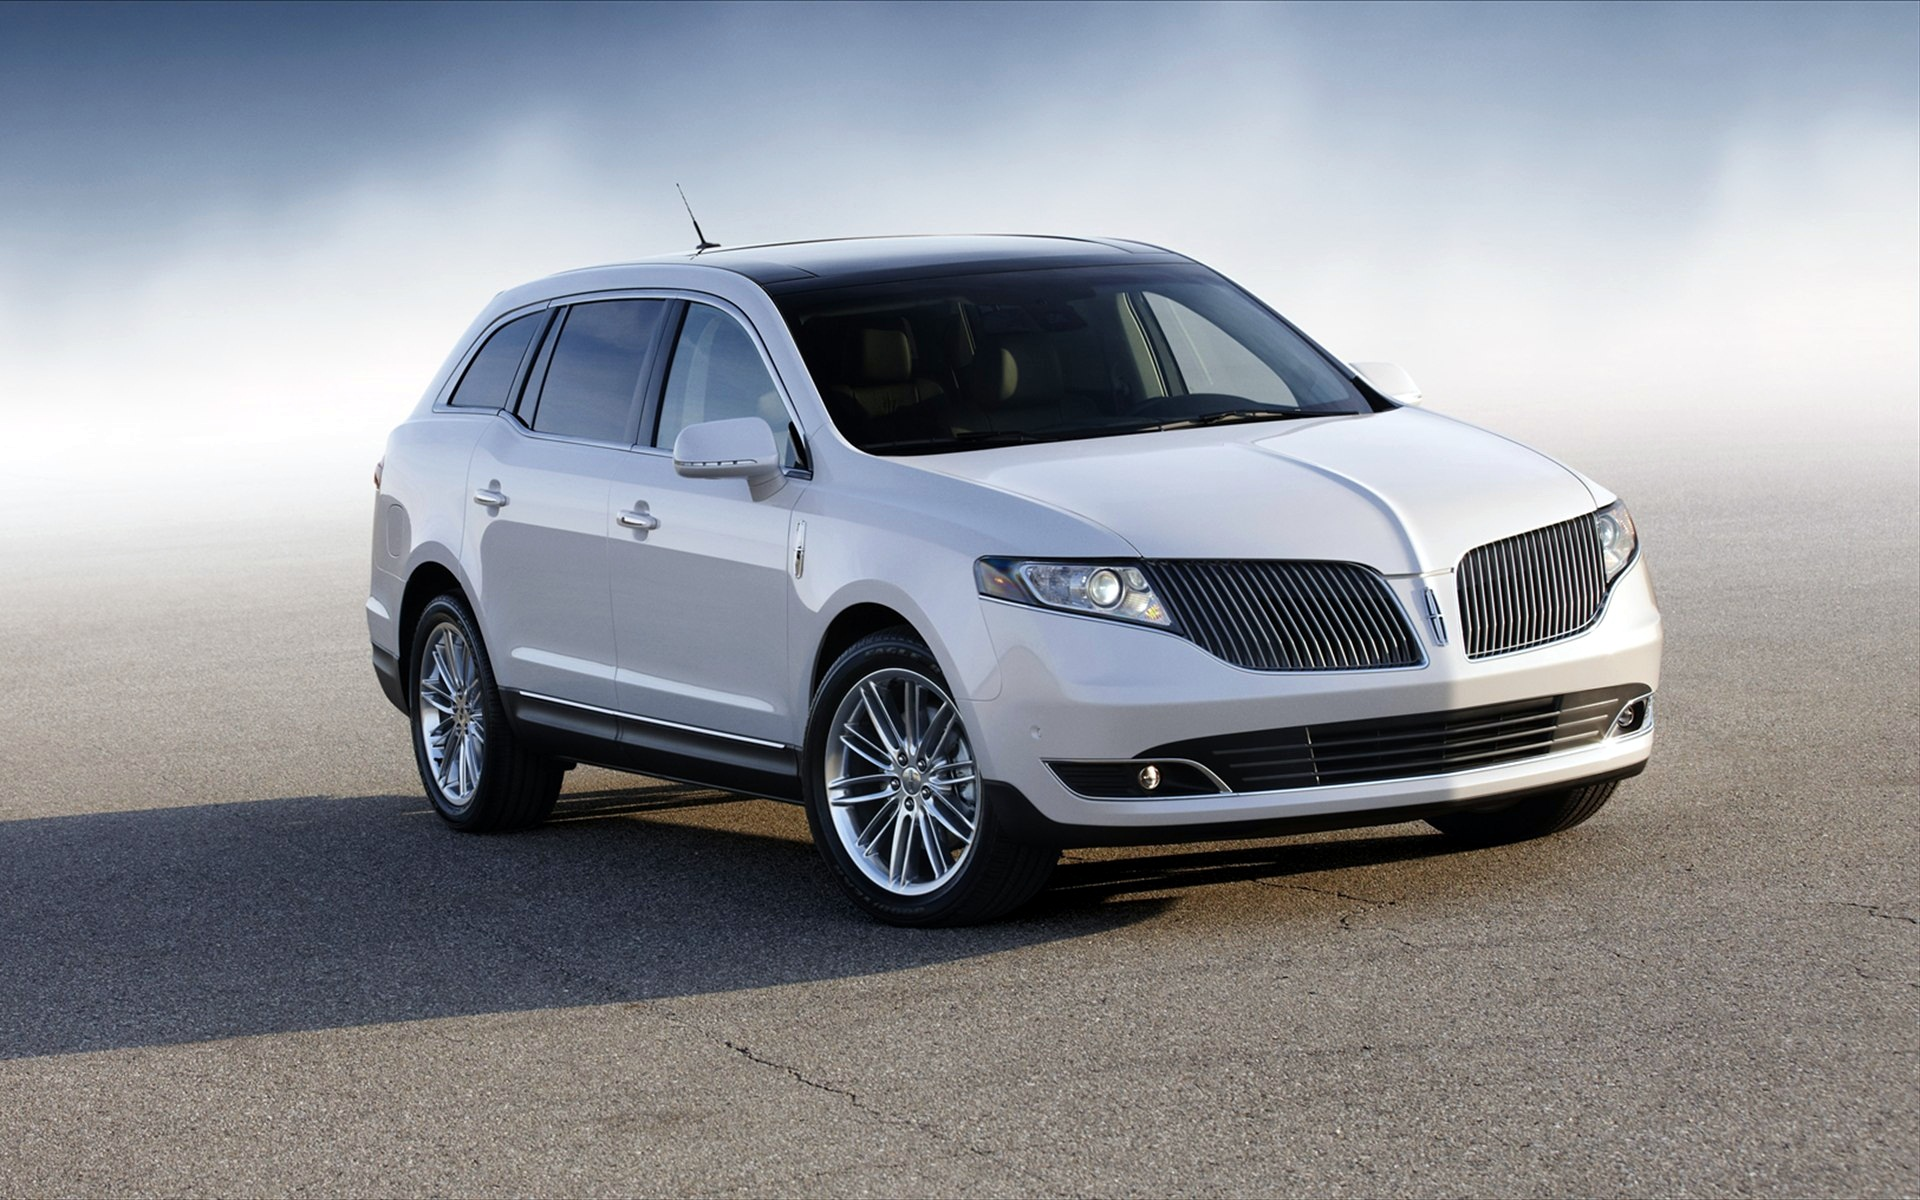 2013 Lincoln MKT Wallpaper | HD Car Wallpapers